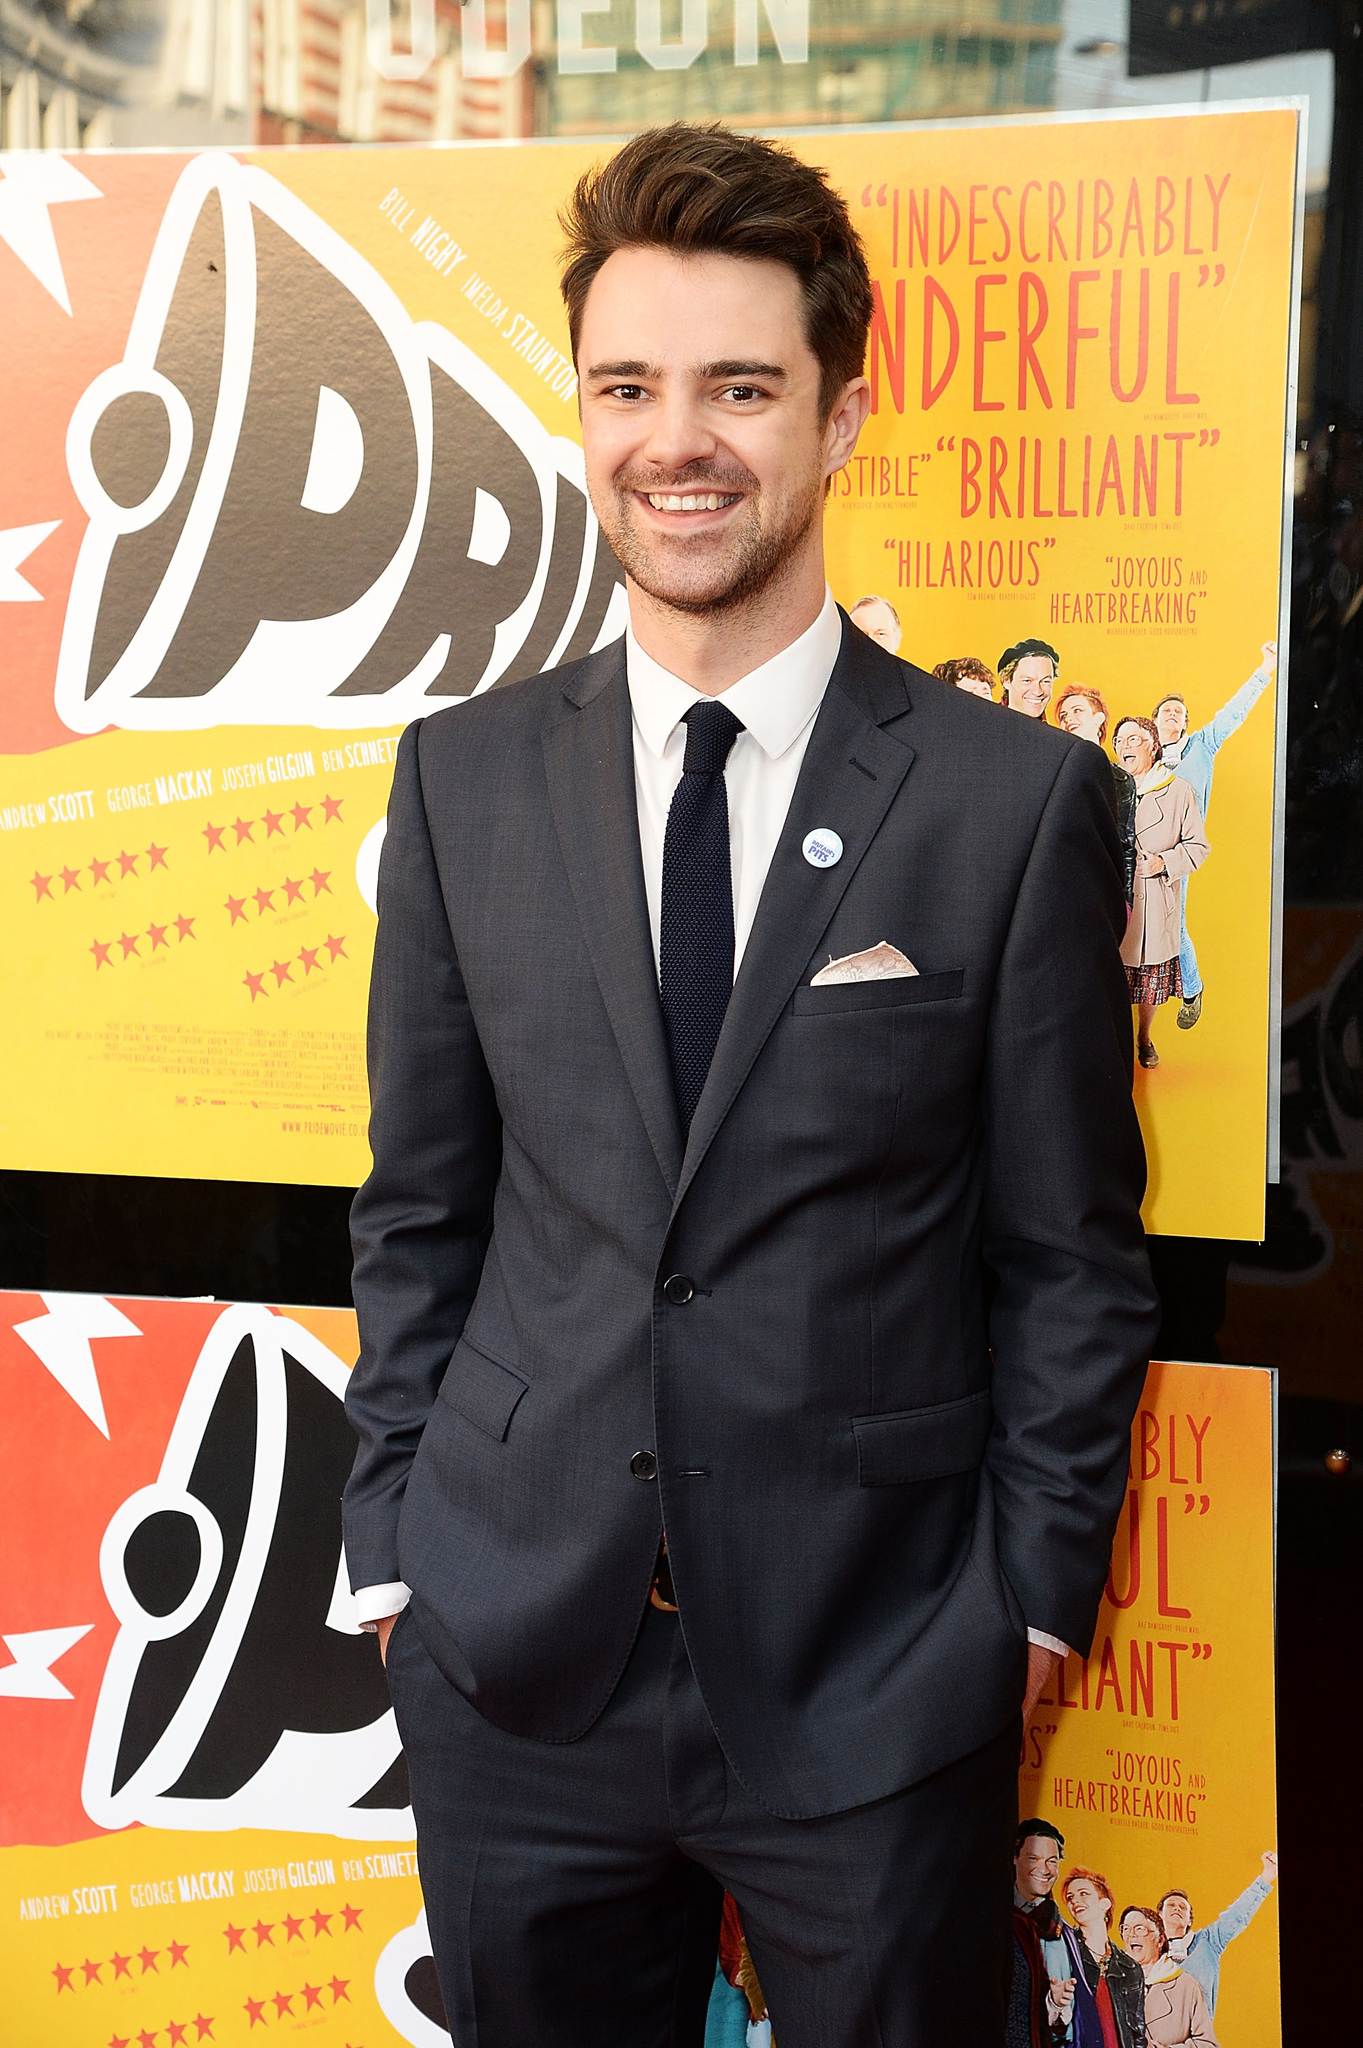 Jack Baggs at an event for Pride (2014)